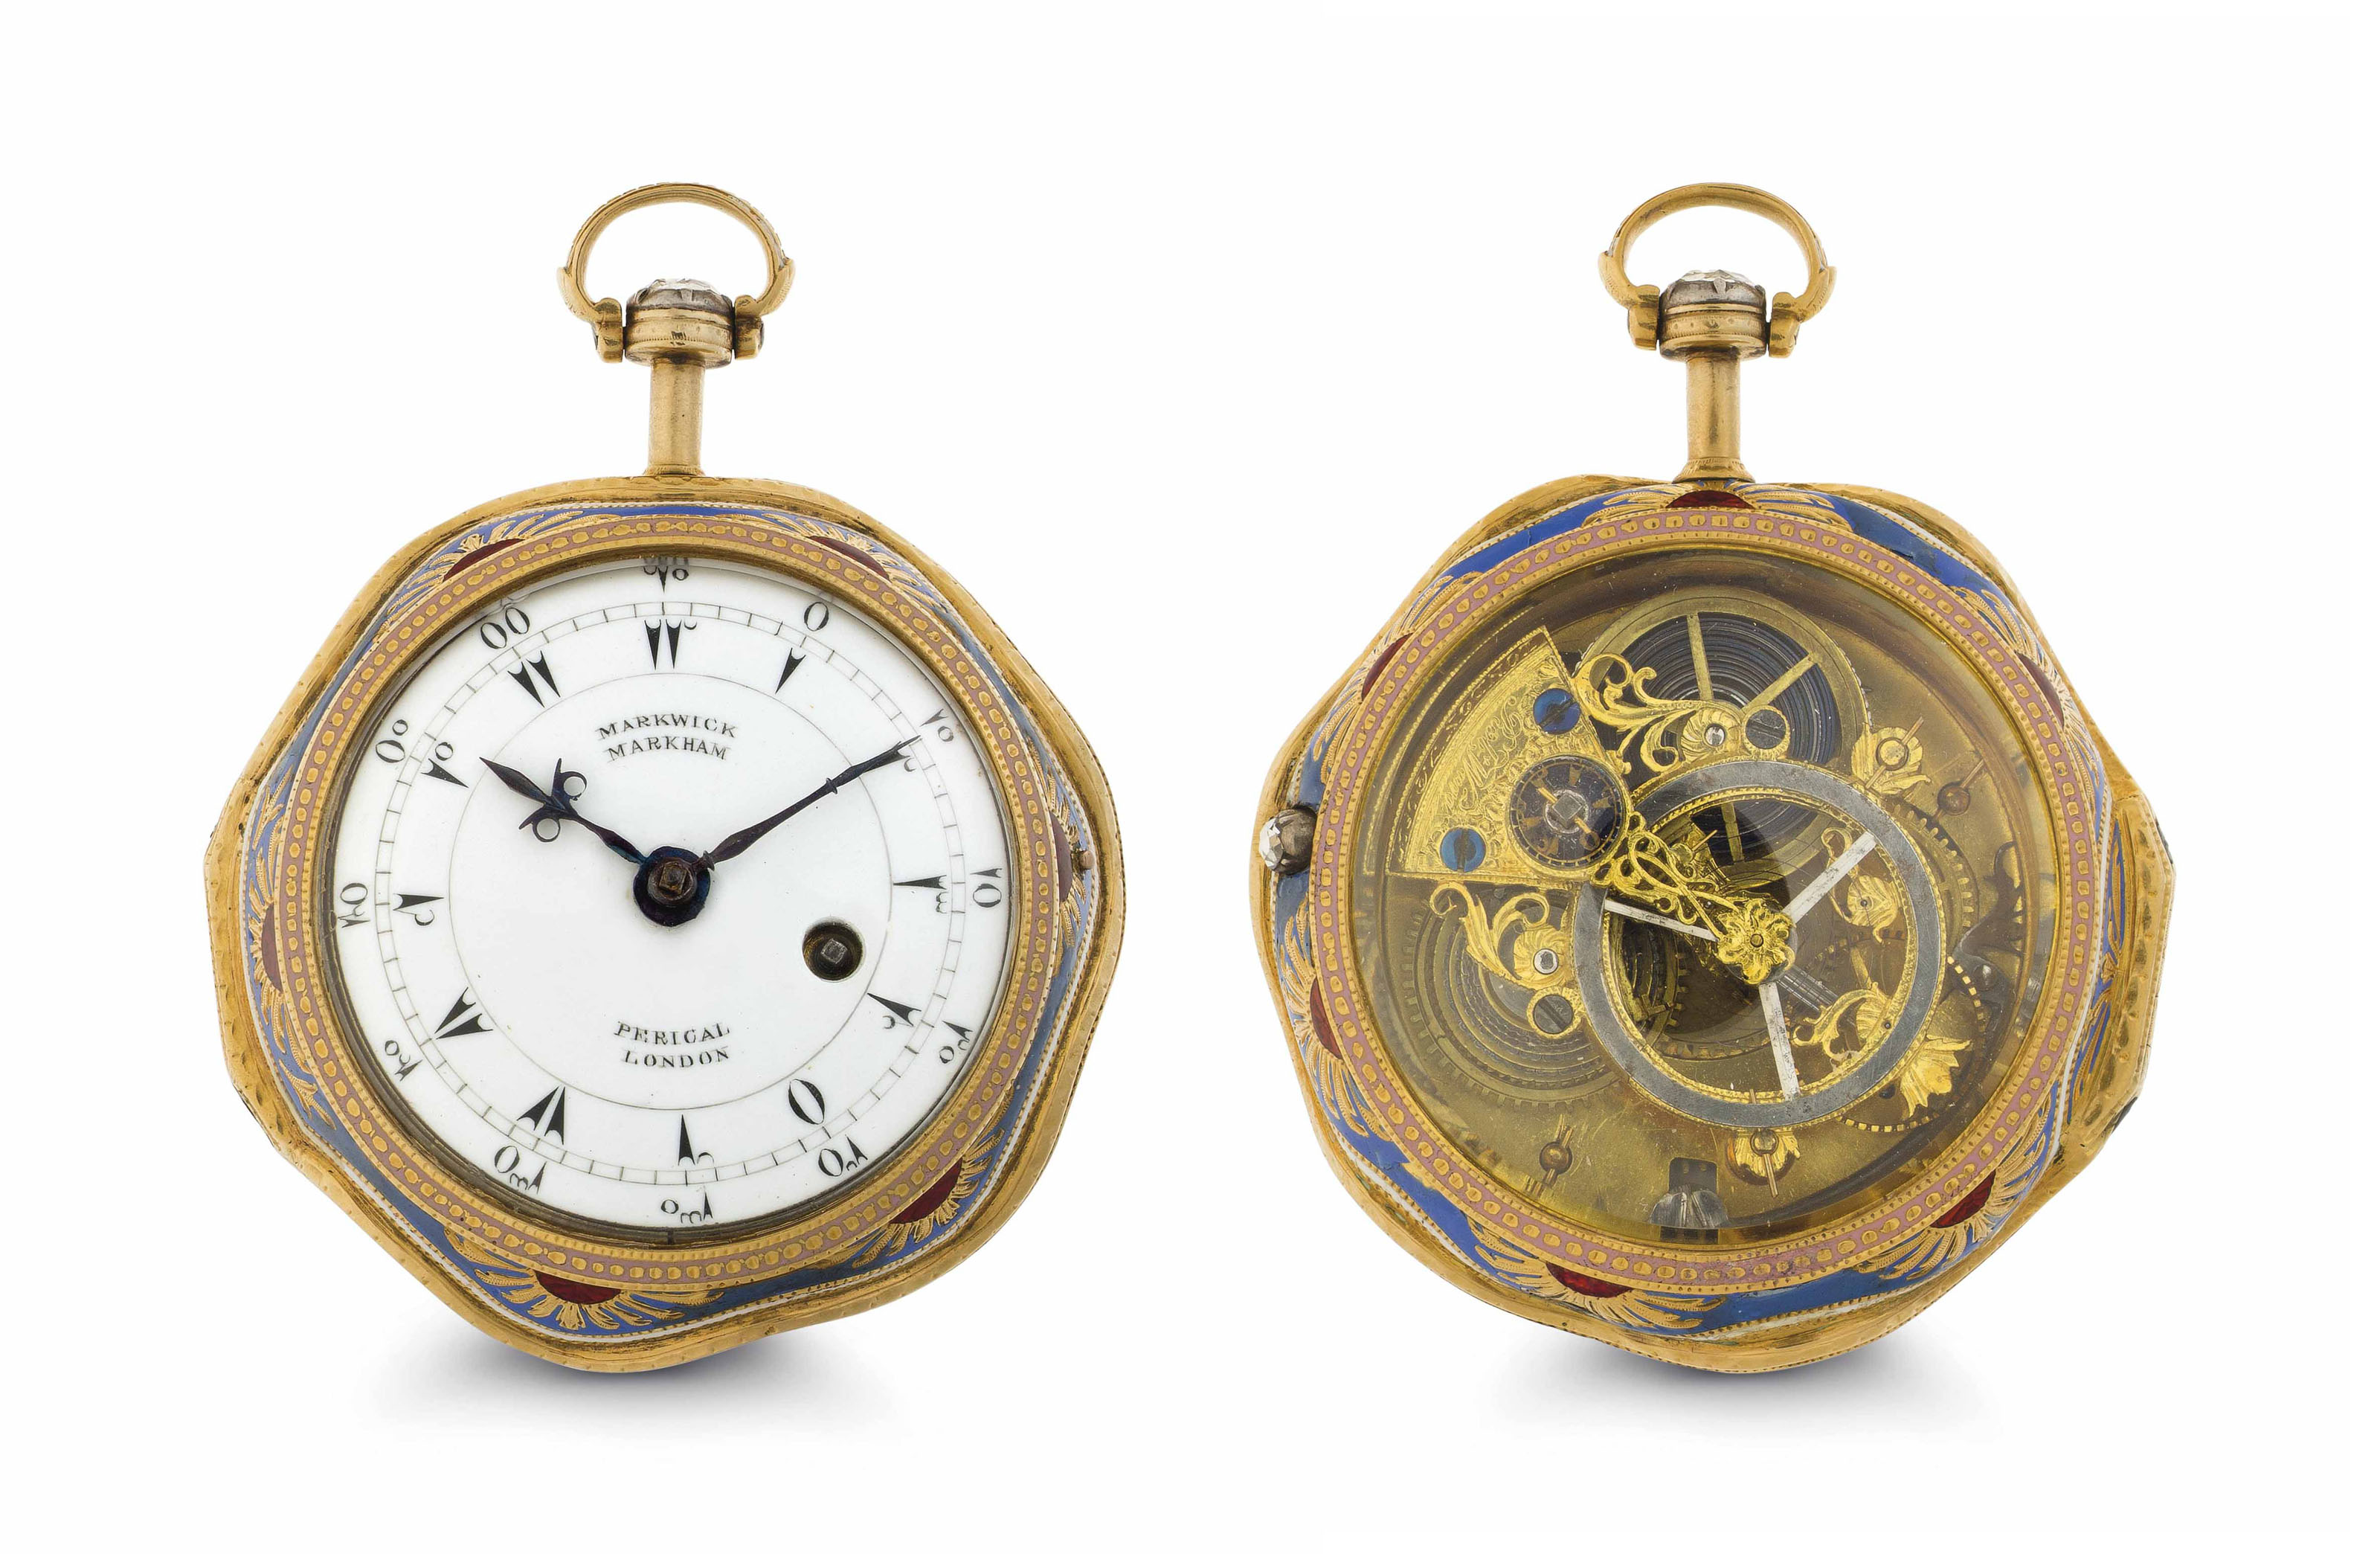 Markwick Markham and Robert Ward. An 18k Gold and Enamel Openface Skeletonized Keywound Verge Watch Made for the Turkish Market